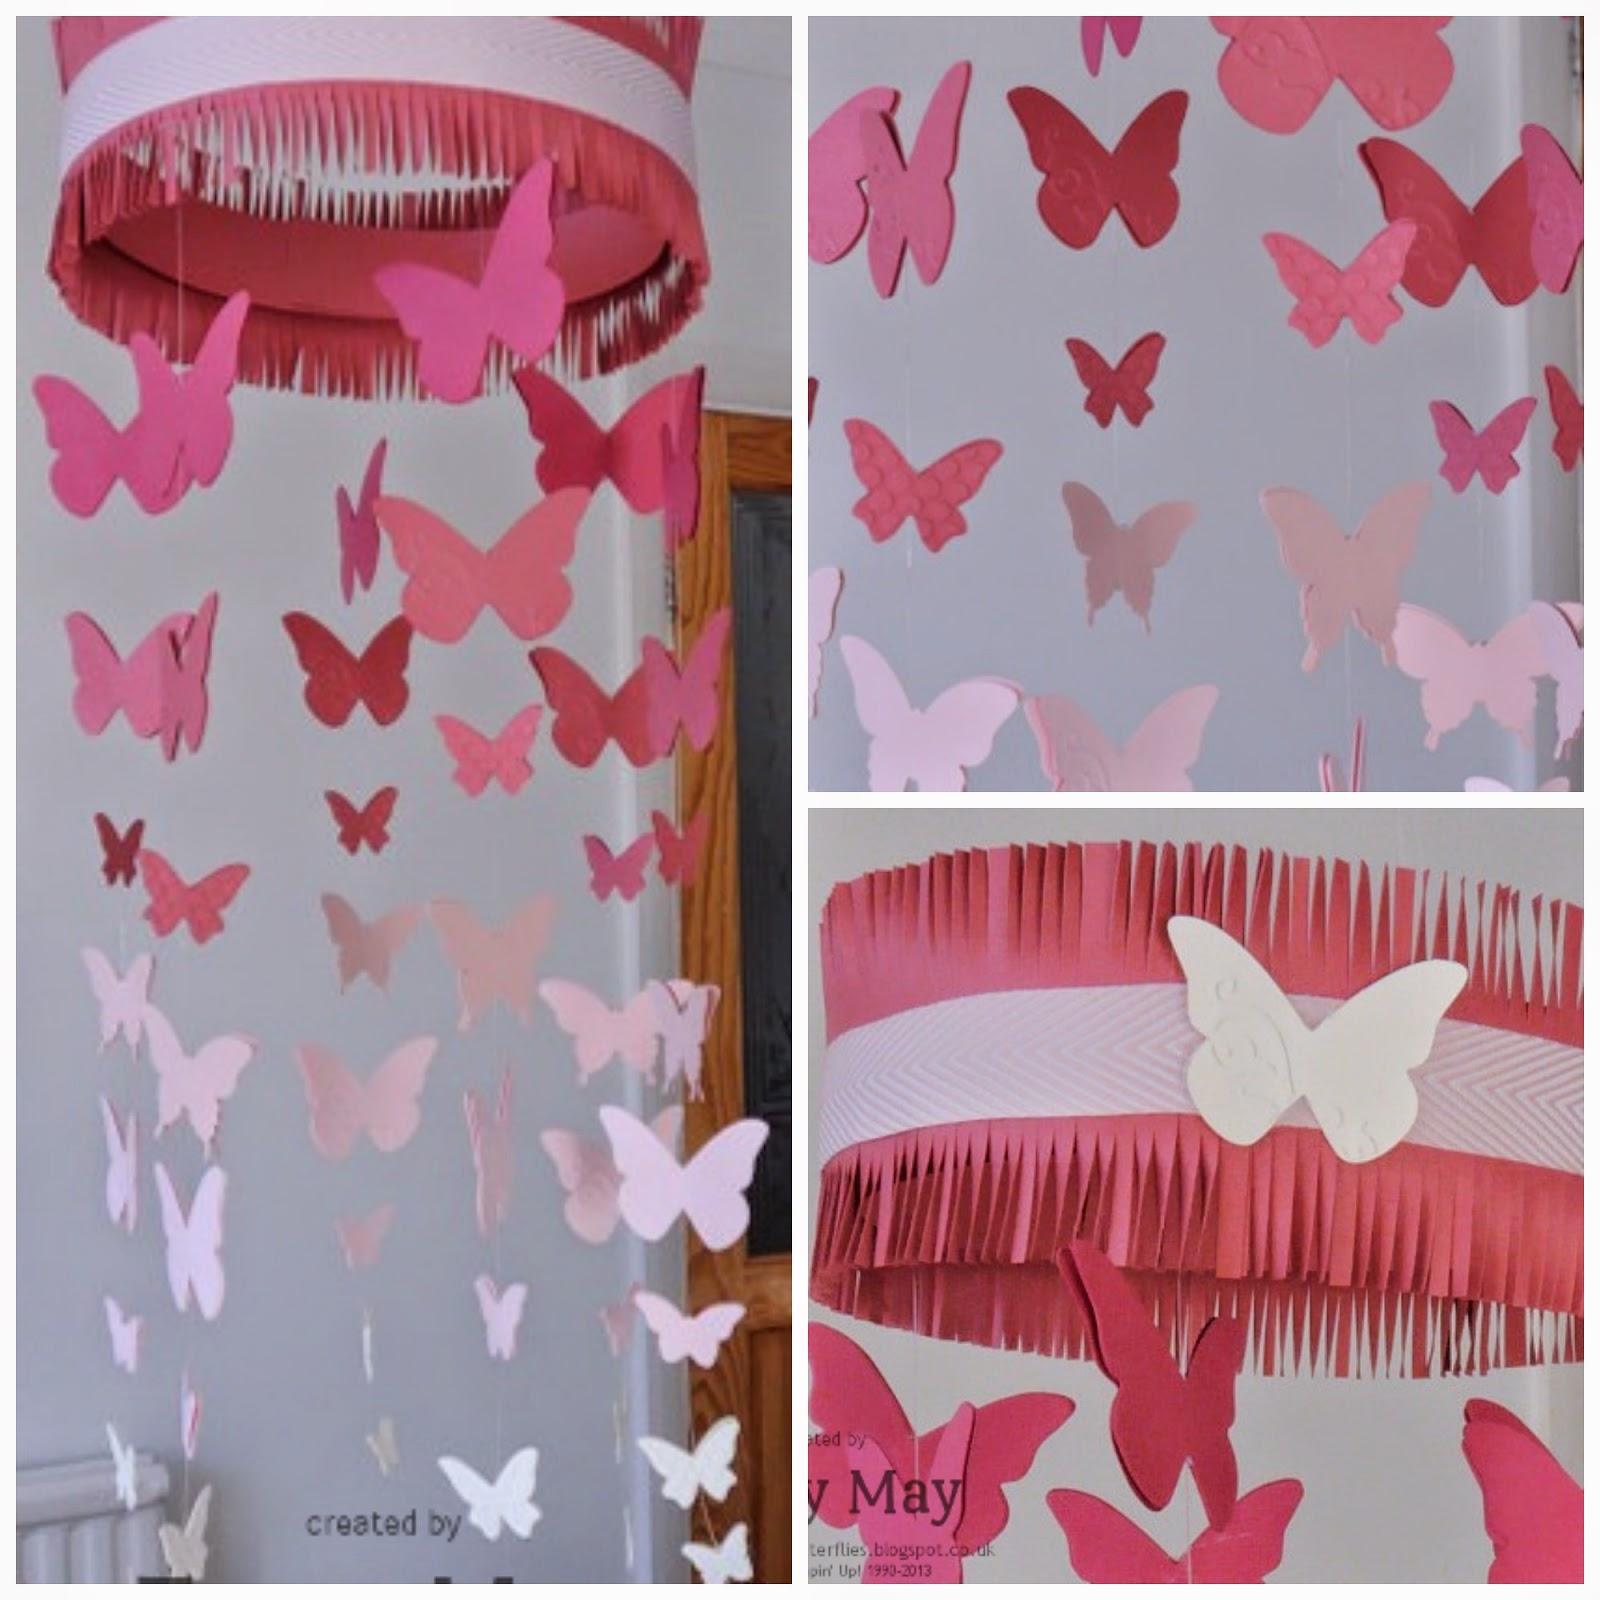 Stampin up beautiful wings bitty butterfly elegant butterfly beautiful butterflies bigs gift ideas Tracy May